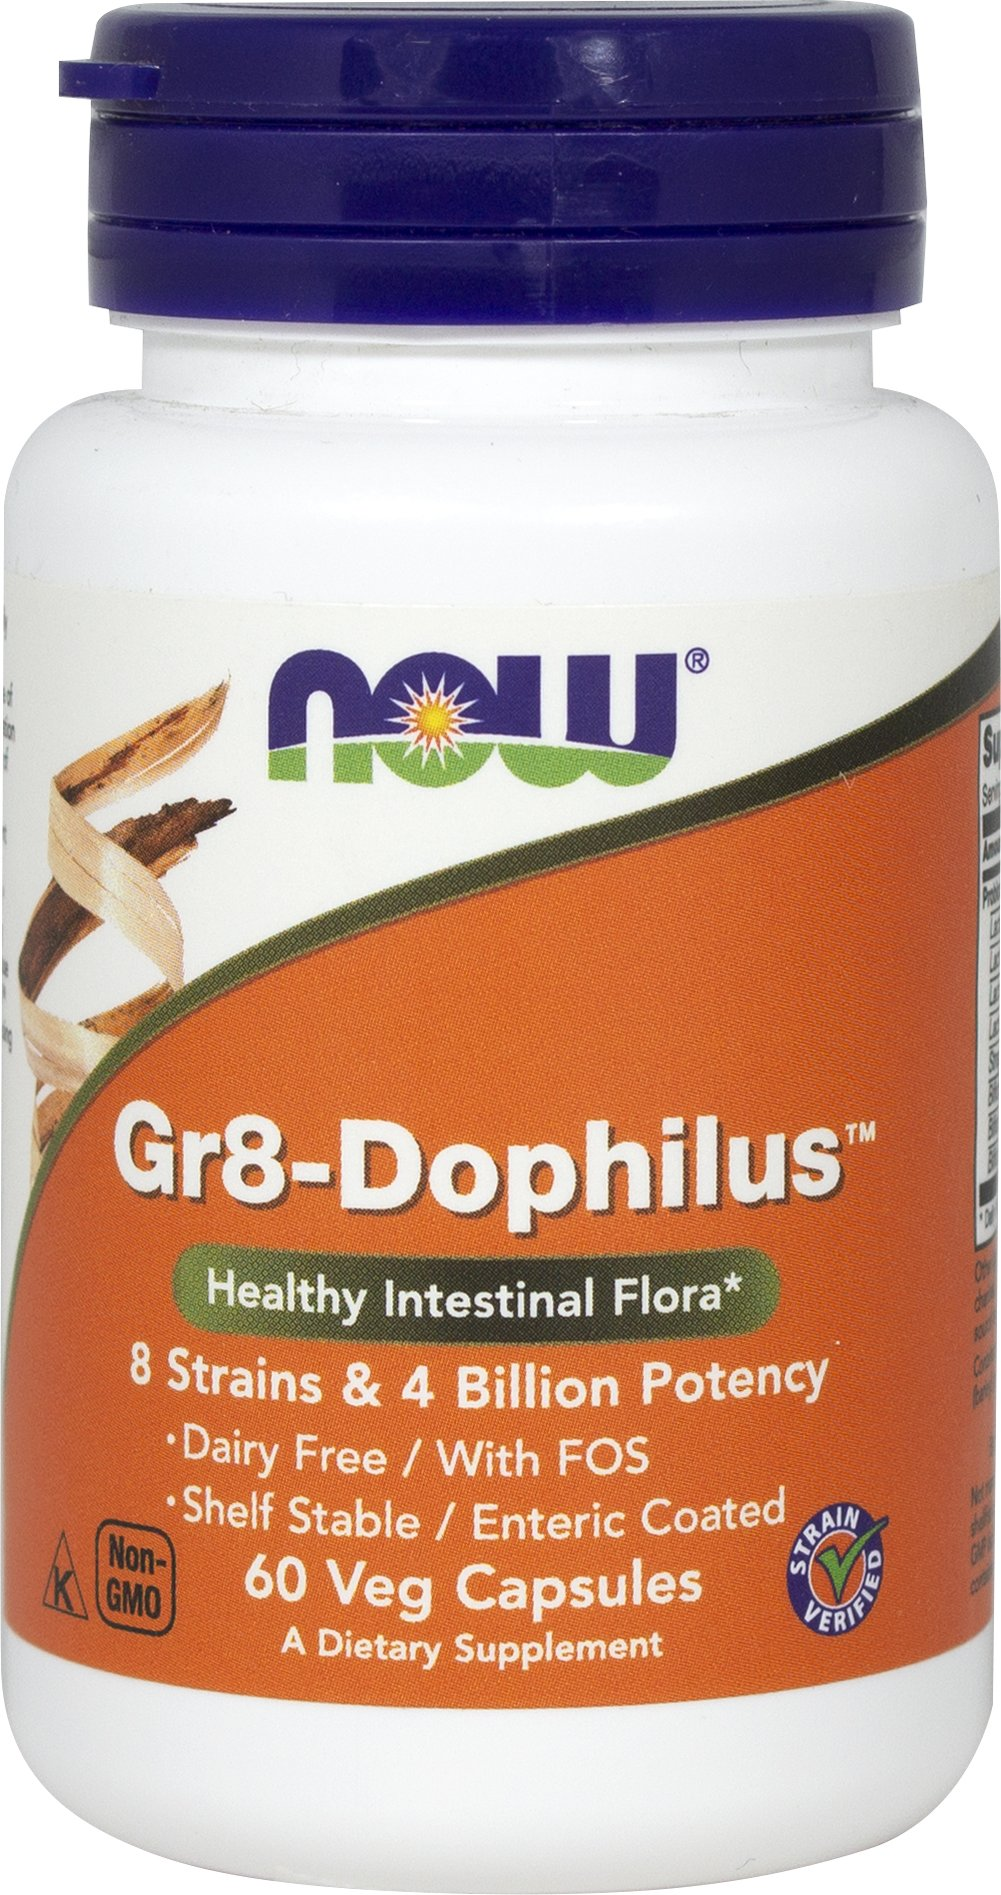 Gr8-Dophilus™  60 Vegi Caps 4 billion $9.99